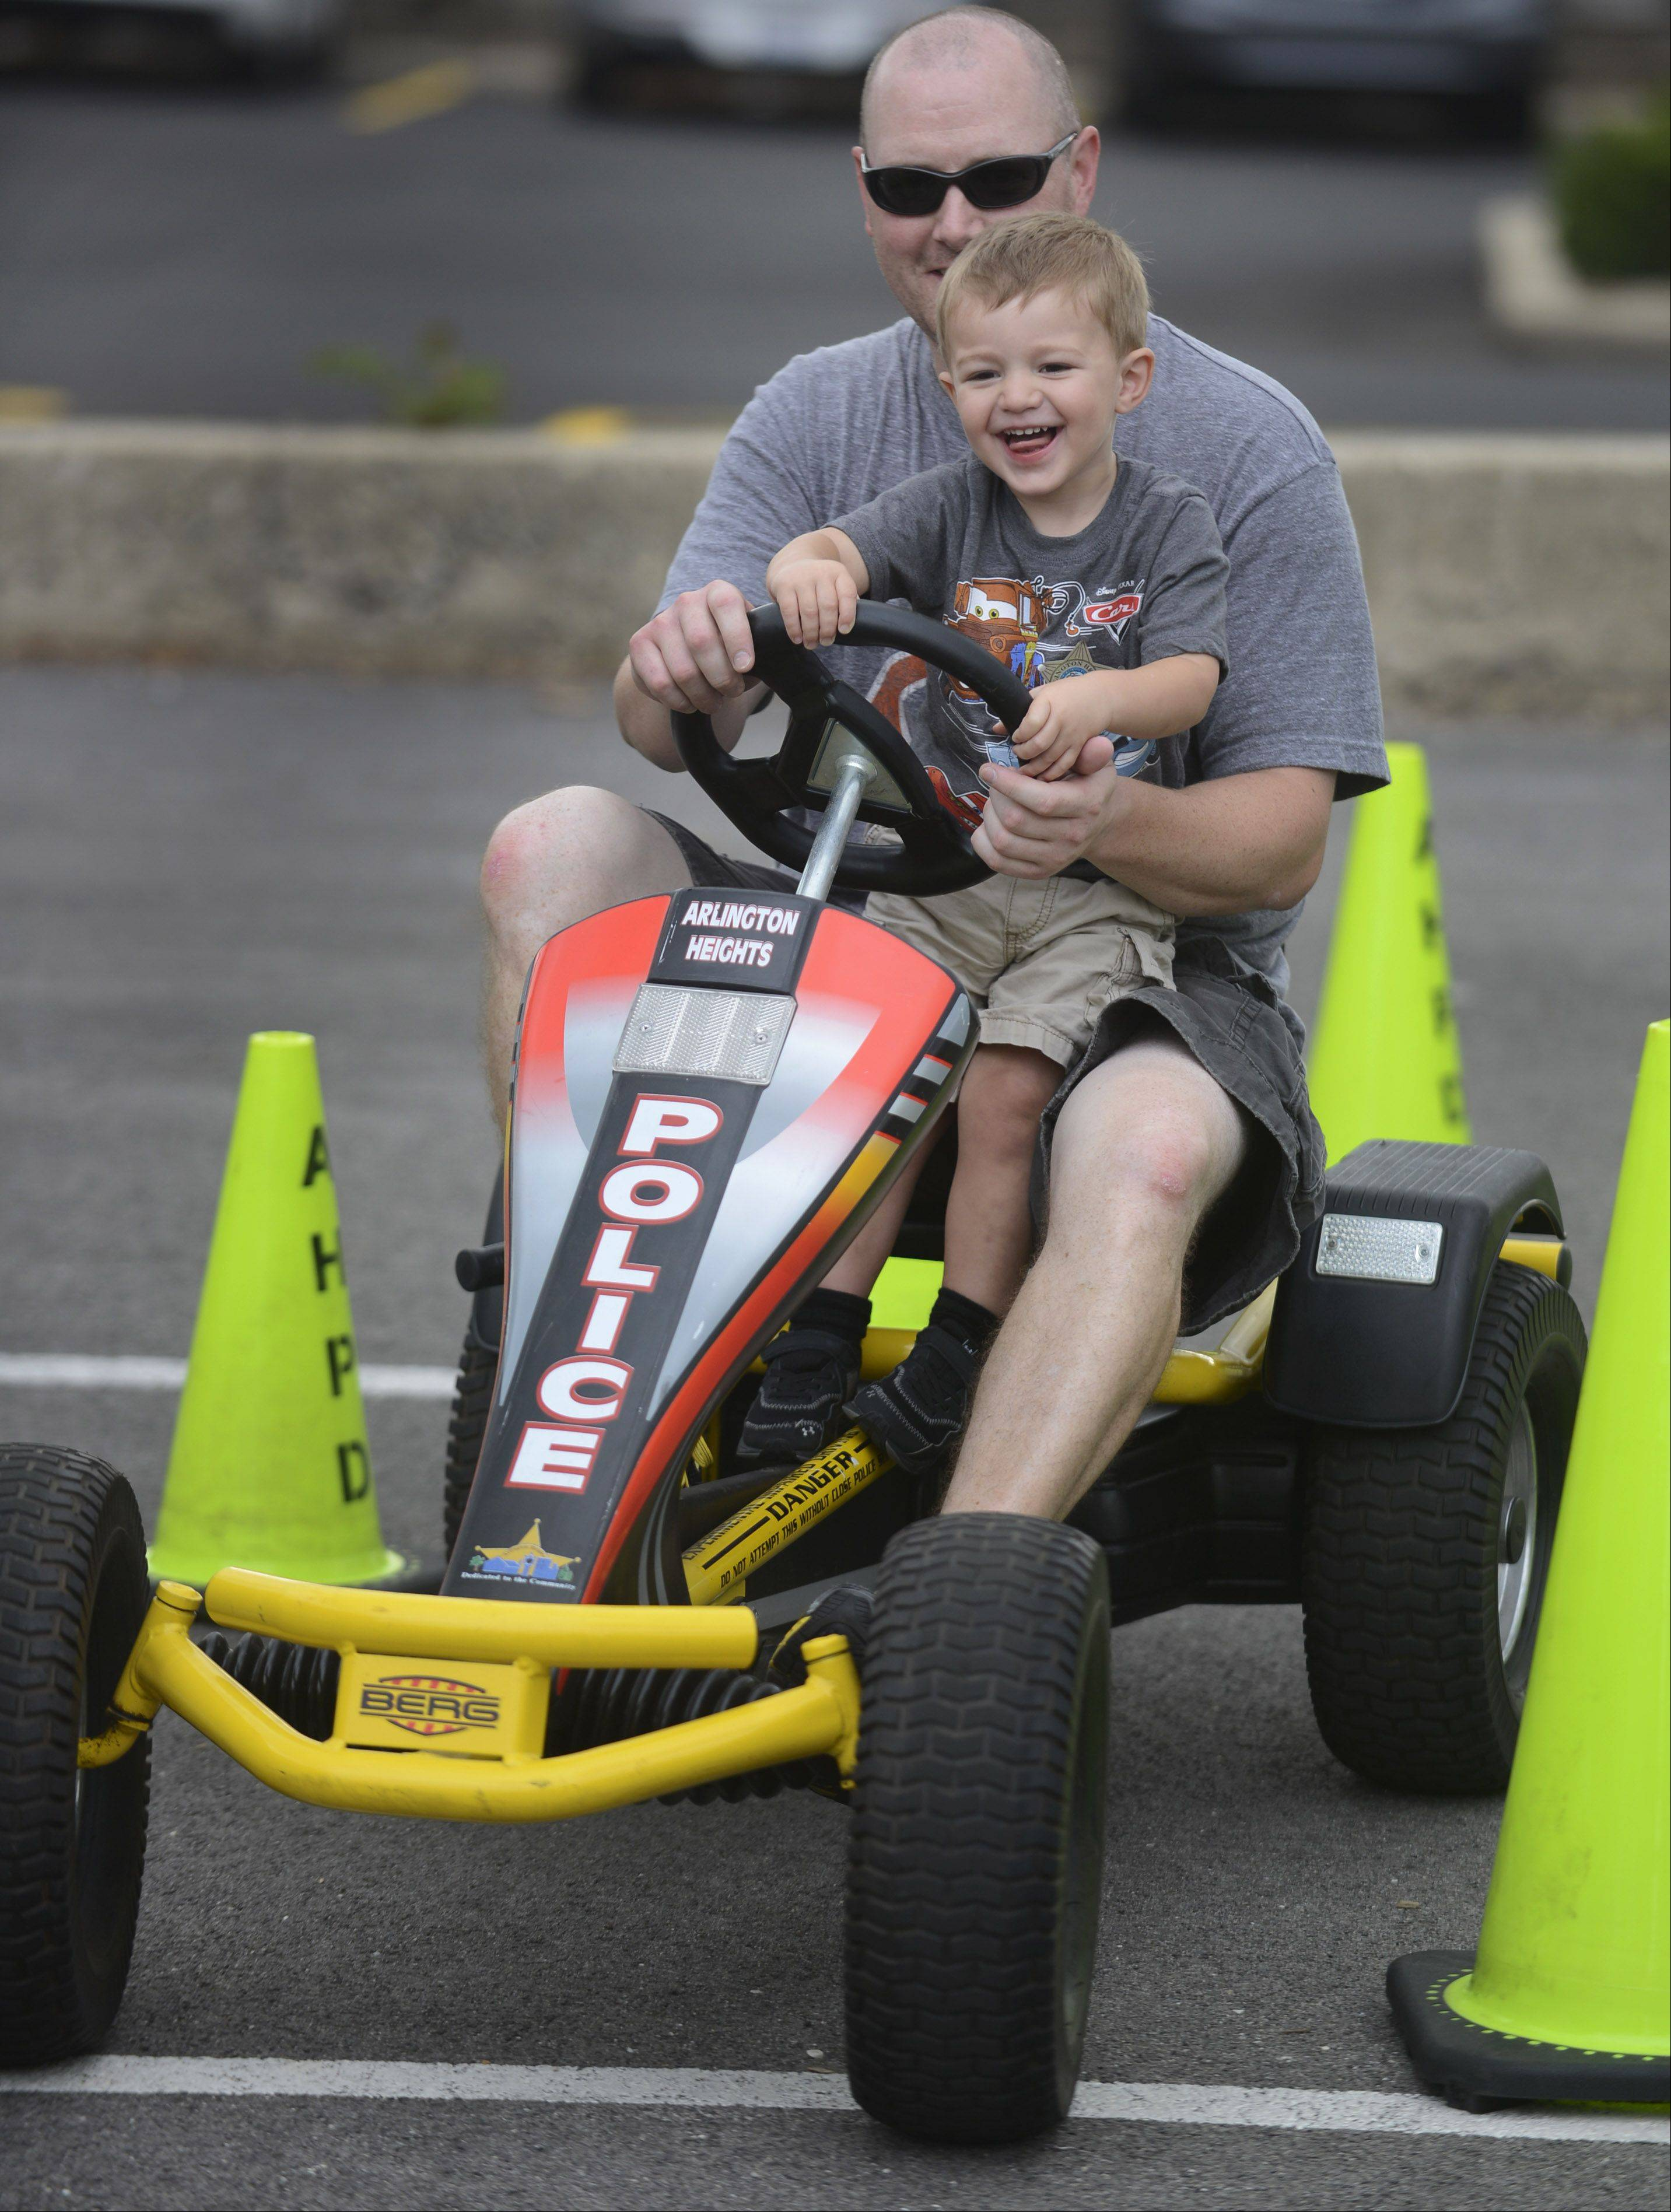 Off-duty Arlington Heights Police Officer Brian Brosnan gives his son Mason a spin in a pedal car used to demonstrate the effects of impaired driving during the Arlington Heights National Night Out at North School Park Tuesday.